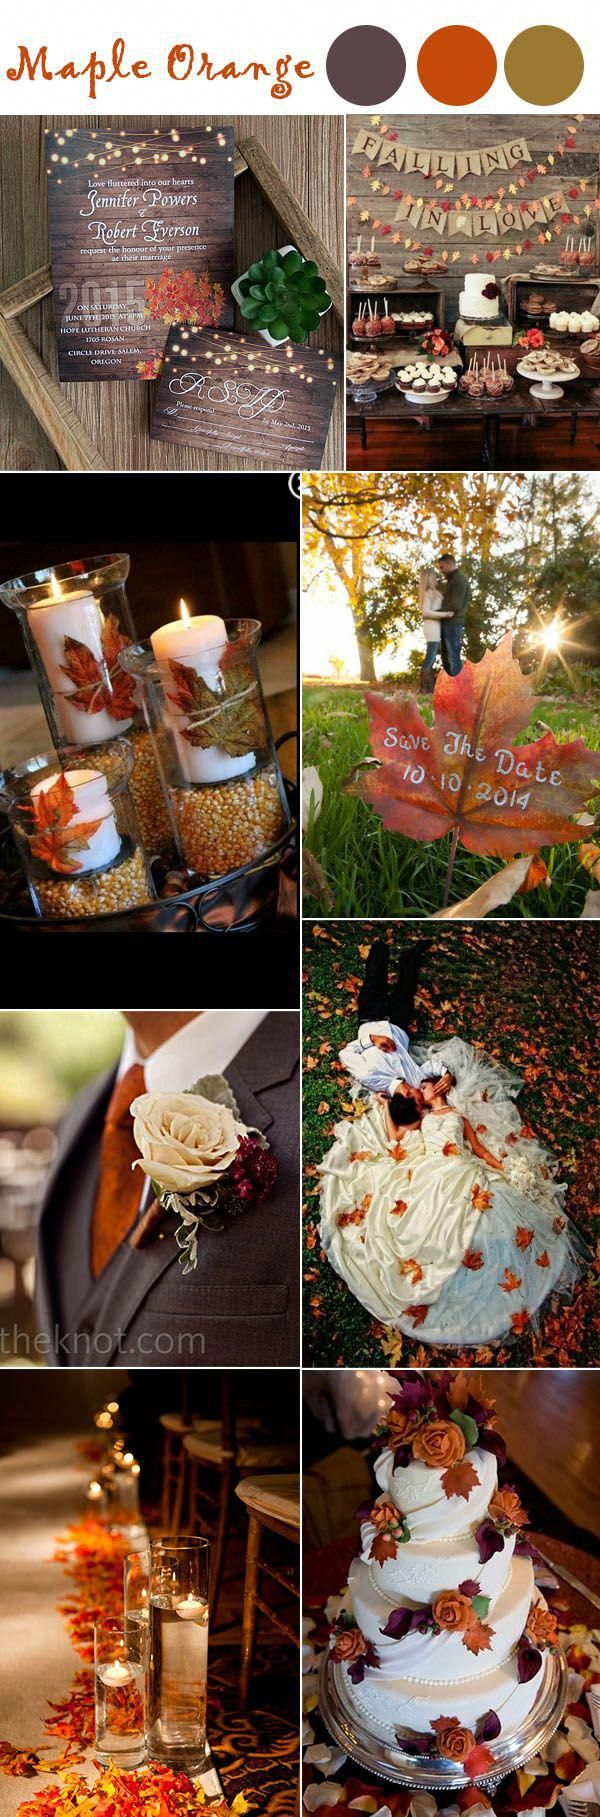 Wedding decorations unique october 2018 burnt orange maple leave fall wedding ideas and wedding colors